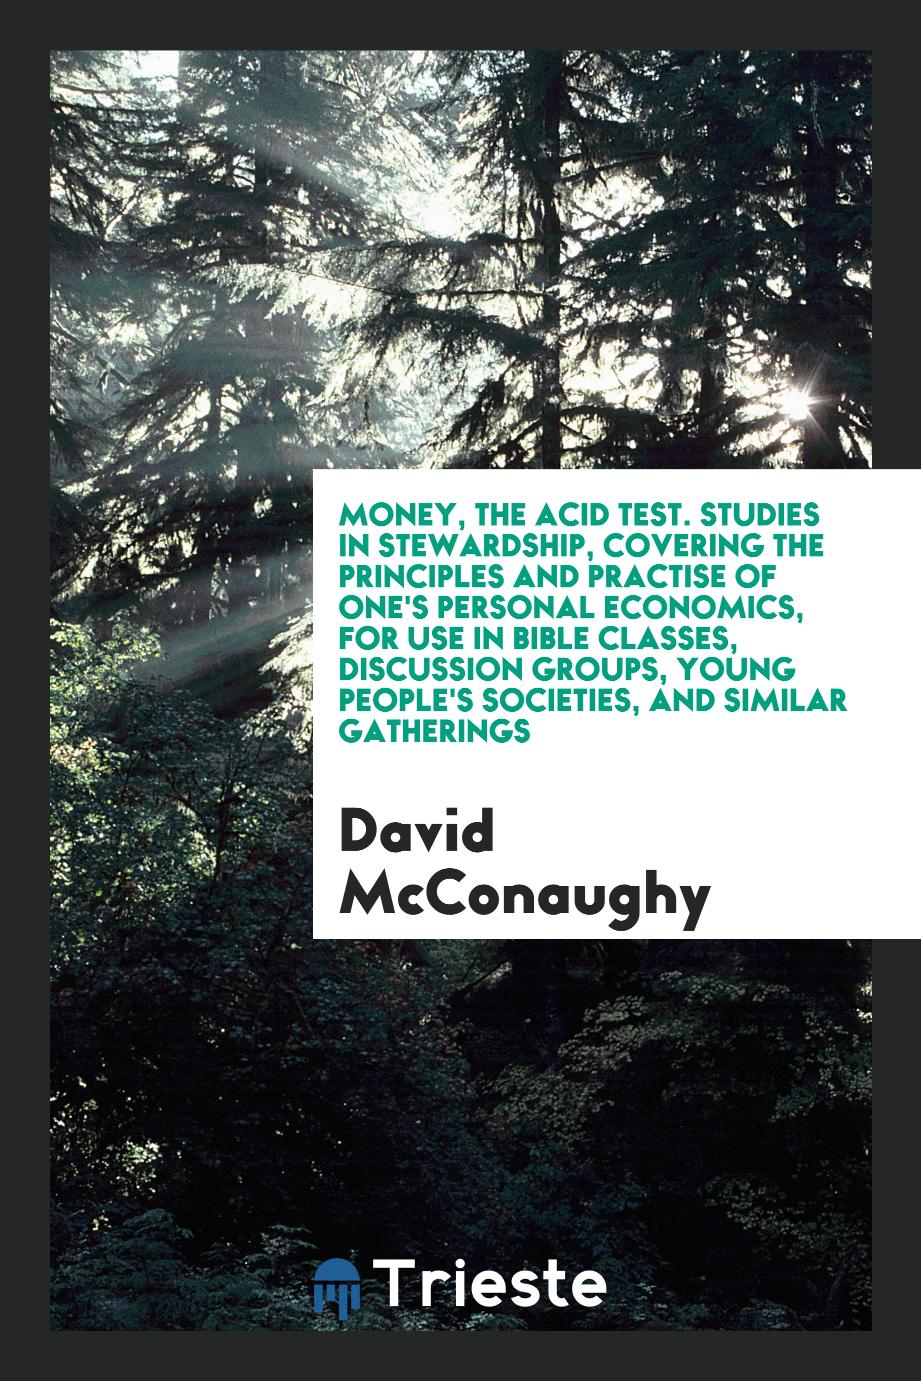 Money, the acid test. Studies in stewardship, covering the principles and practise of one's personal economics, for use in Bible classes, discussion groups, young people's societies, and similar gatherings